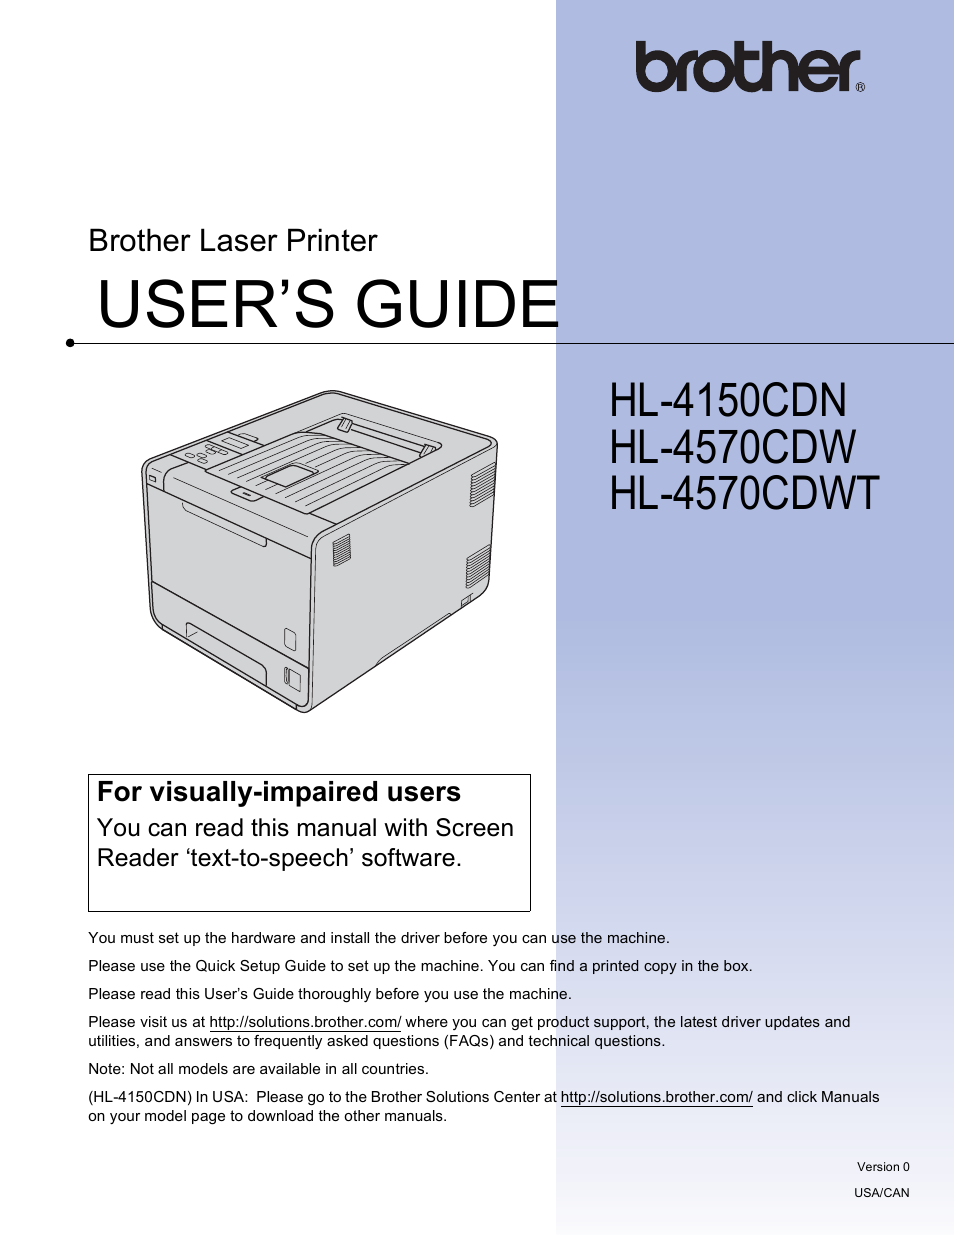 brother hl 4150cdn user manual 199 pages also for hl 4570cdw rh manualsdir com brother hl 4570cdw service manual brother hl-4570cdw manual